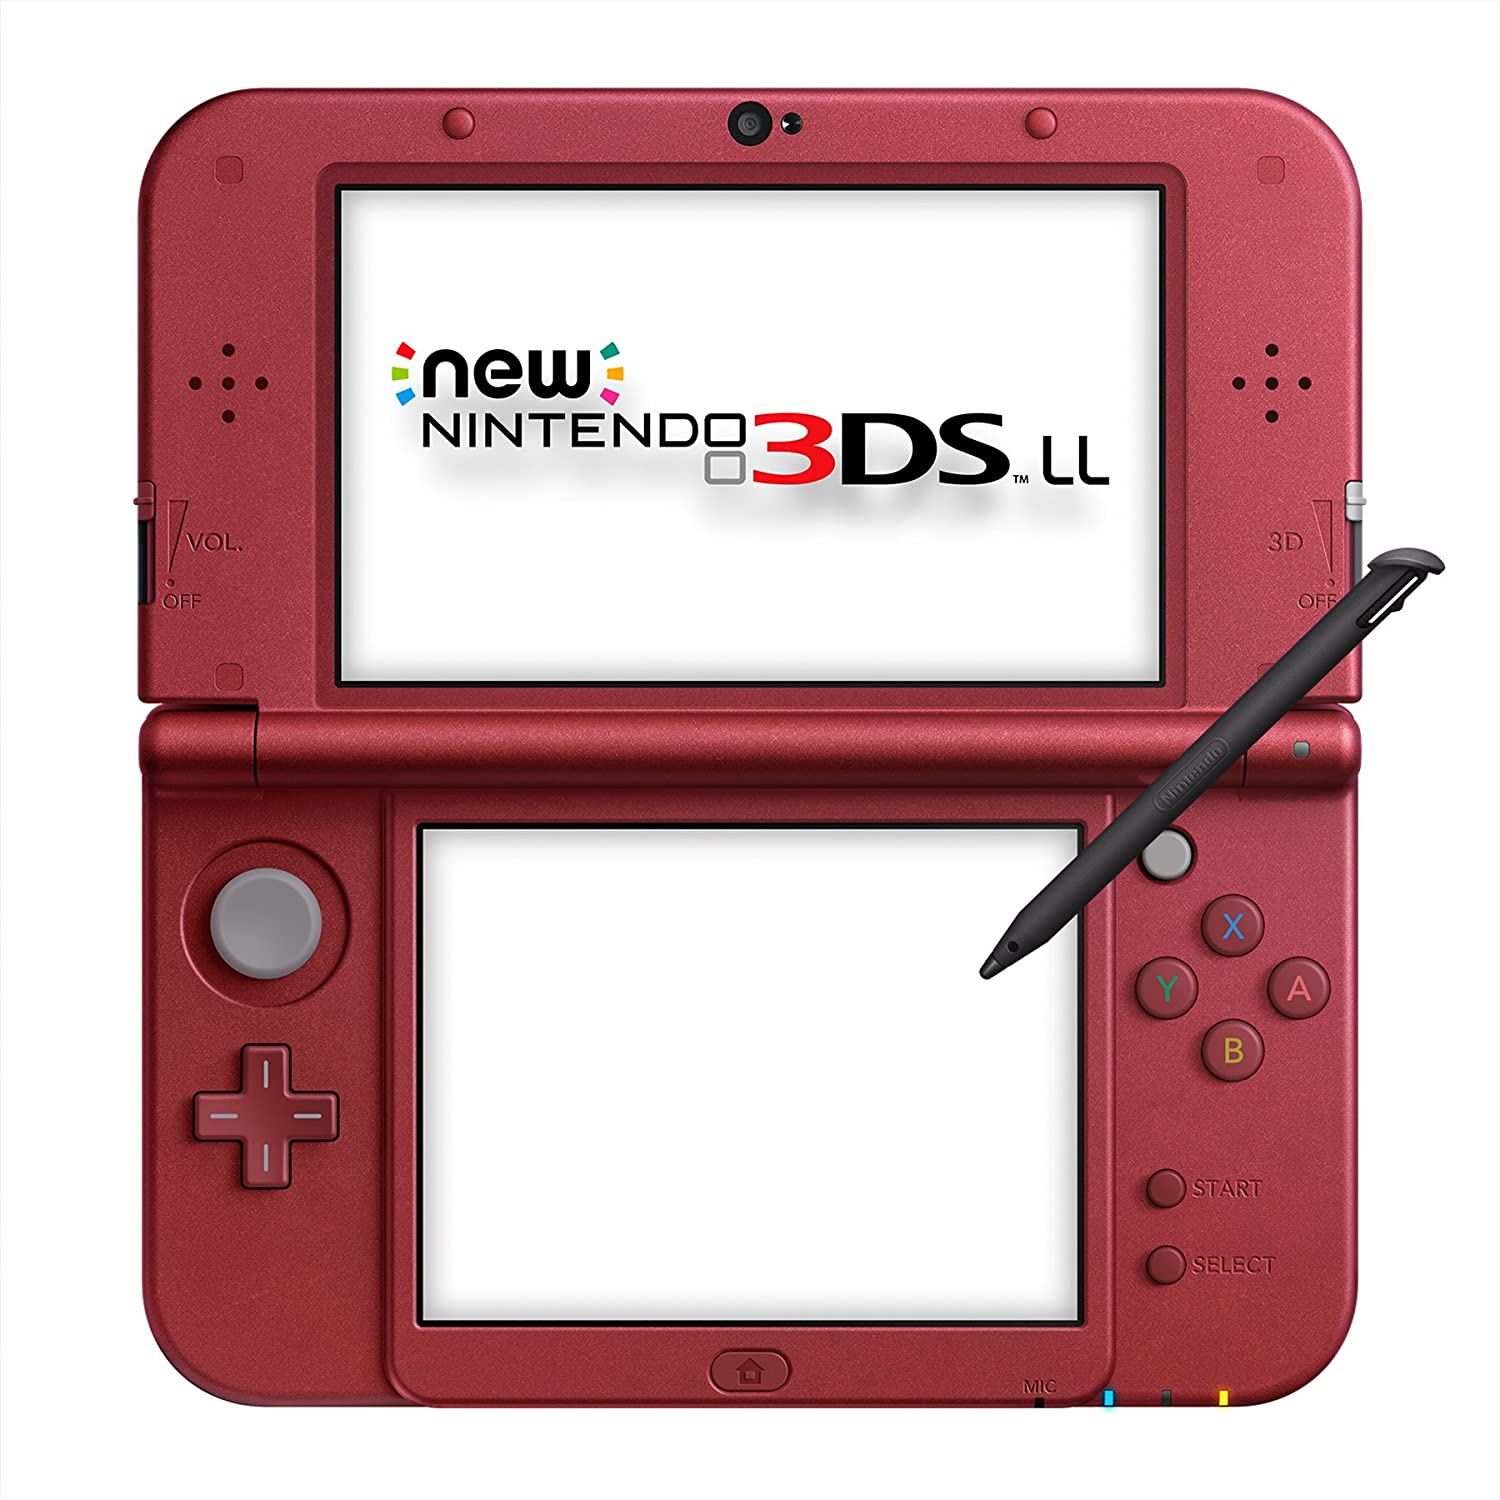 NINTENDO DS New NINTENDO 3DS LL Newニンテンドー3DS LL RED-S-RAAA メタリックレッドの画像